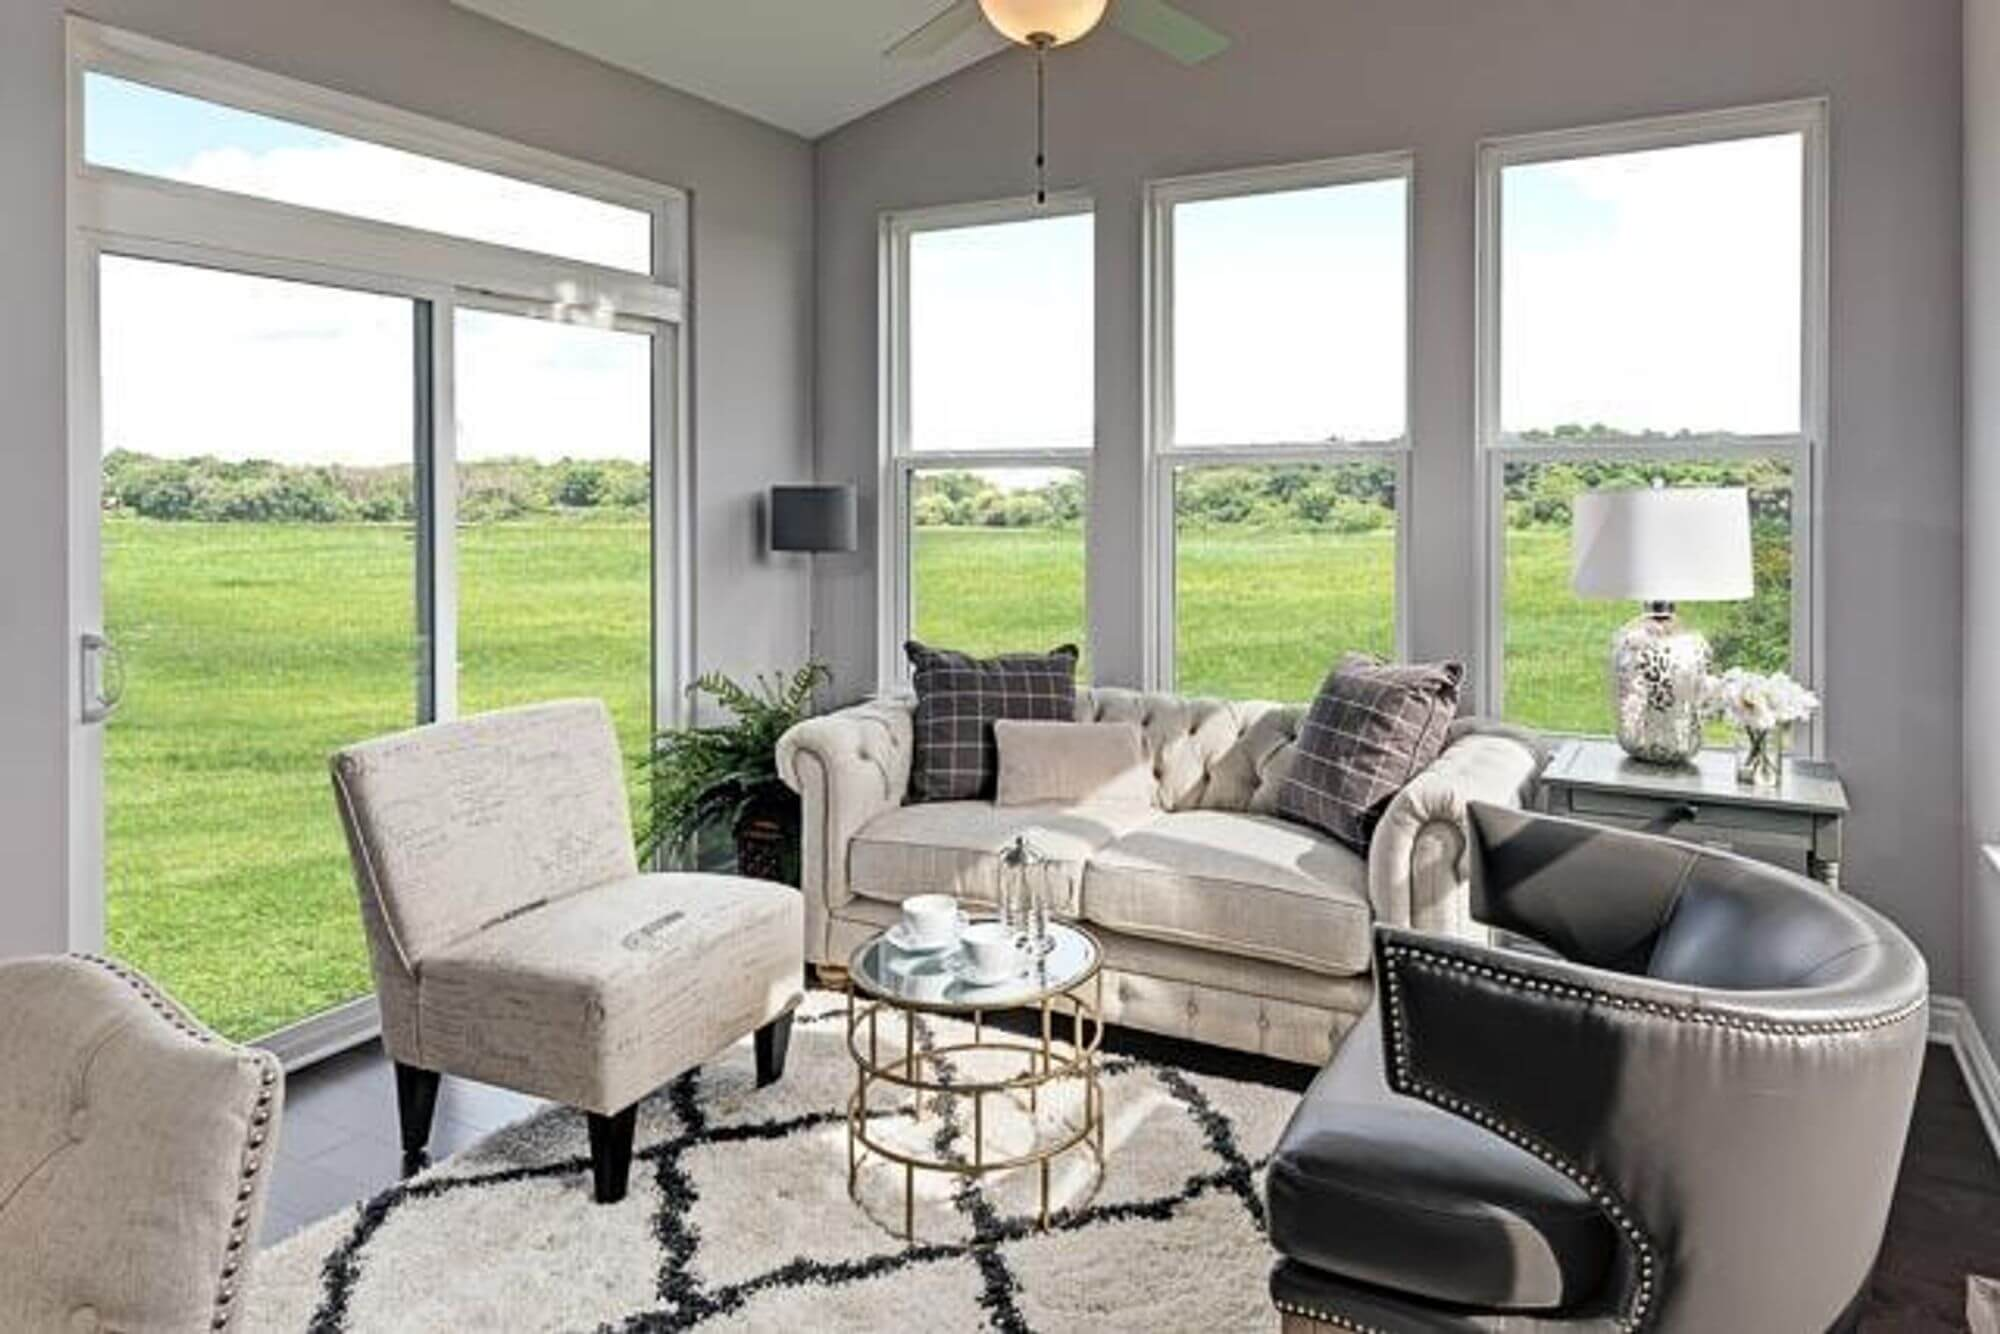 An in-home sunroom representing the benefits of sunrooms sold by custom homebuilders Robertson Homes in Michigan